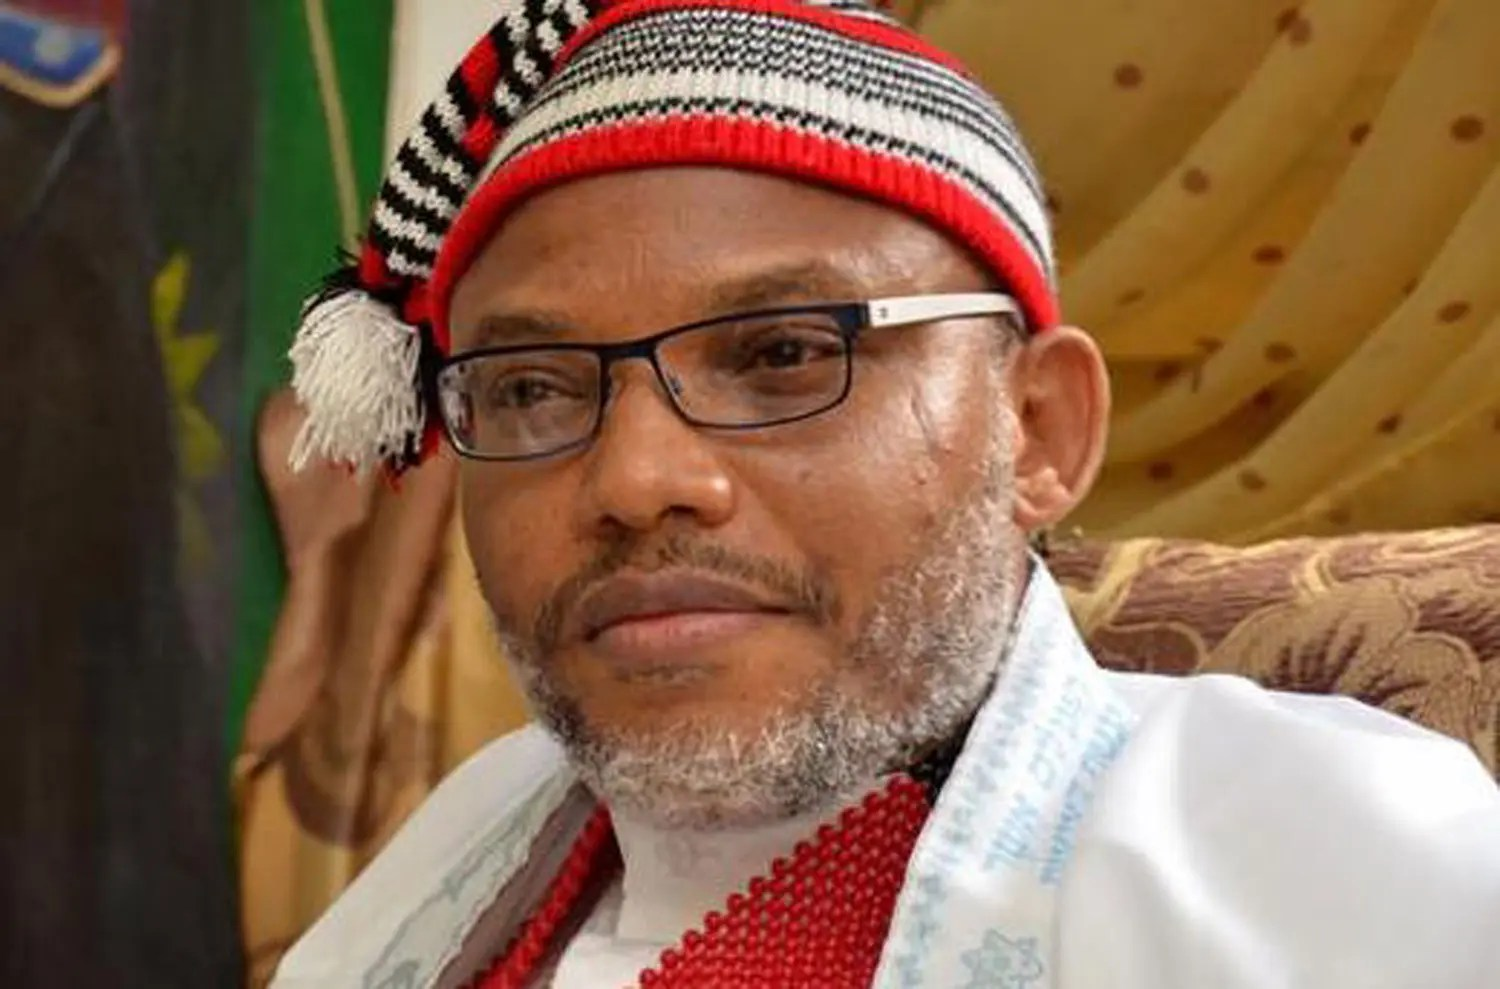 Steer clear from Ebonyi state, Group dares Nnamdi Kanu, IPOB - Vanguard